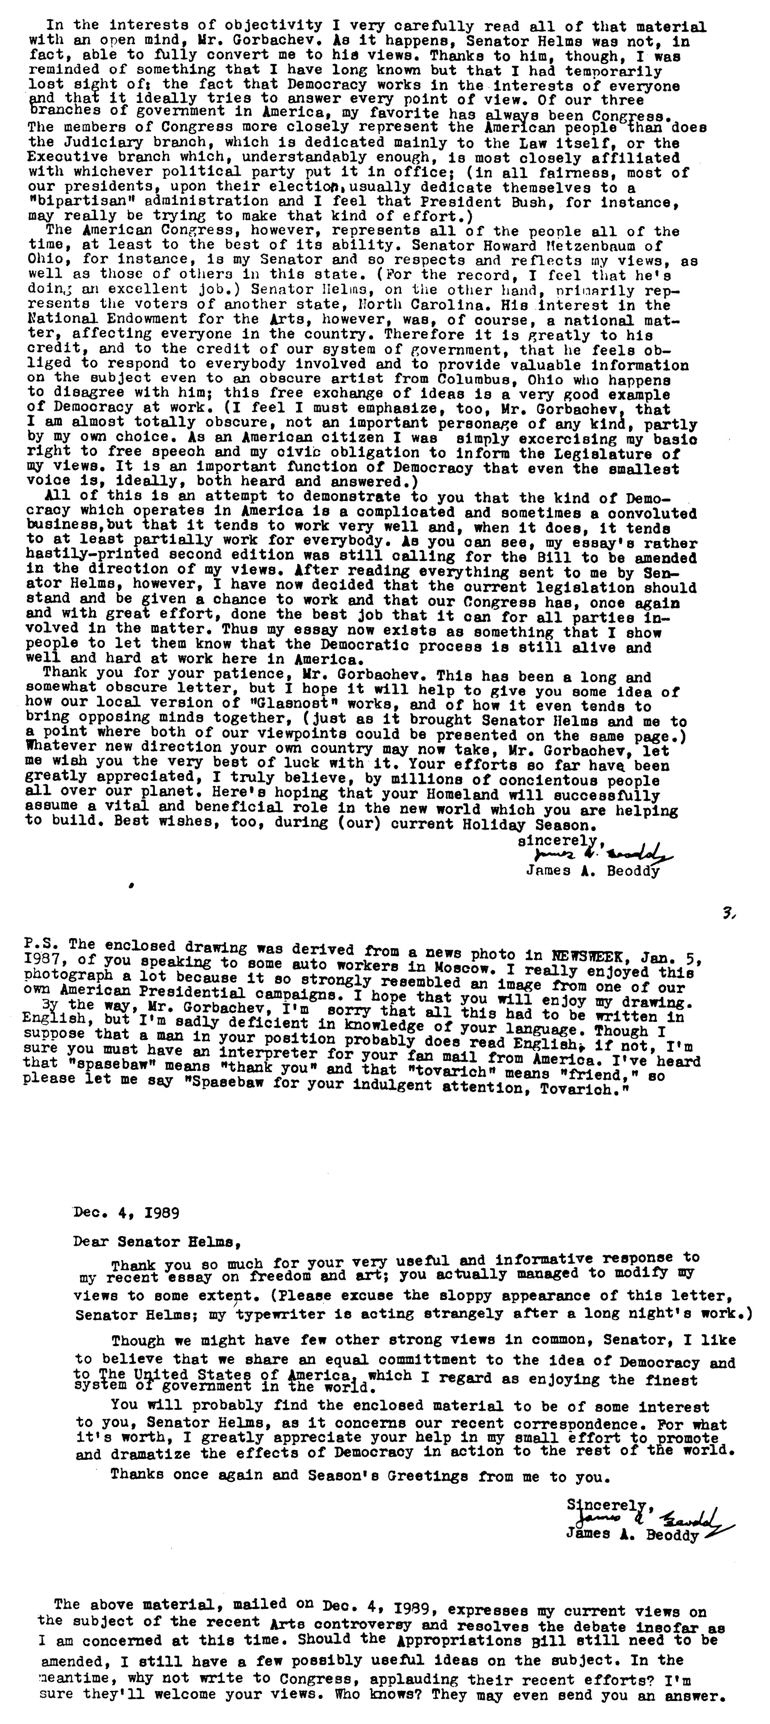 Letter To Mikhail Gorbachev - Page Two